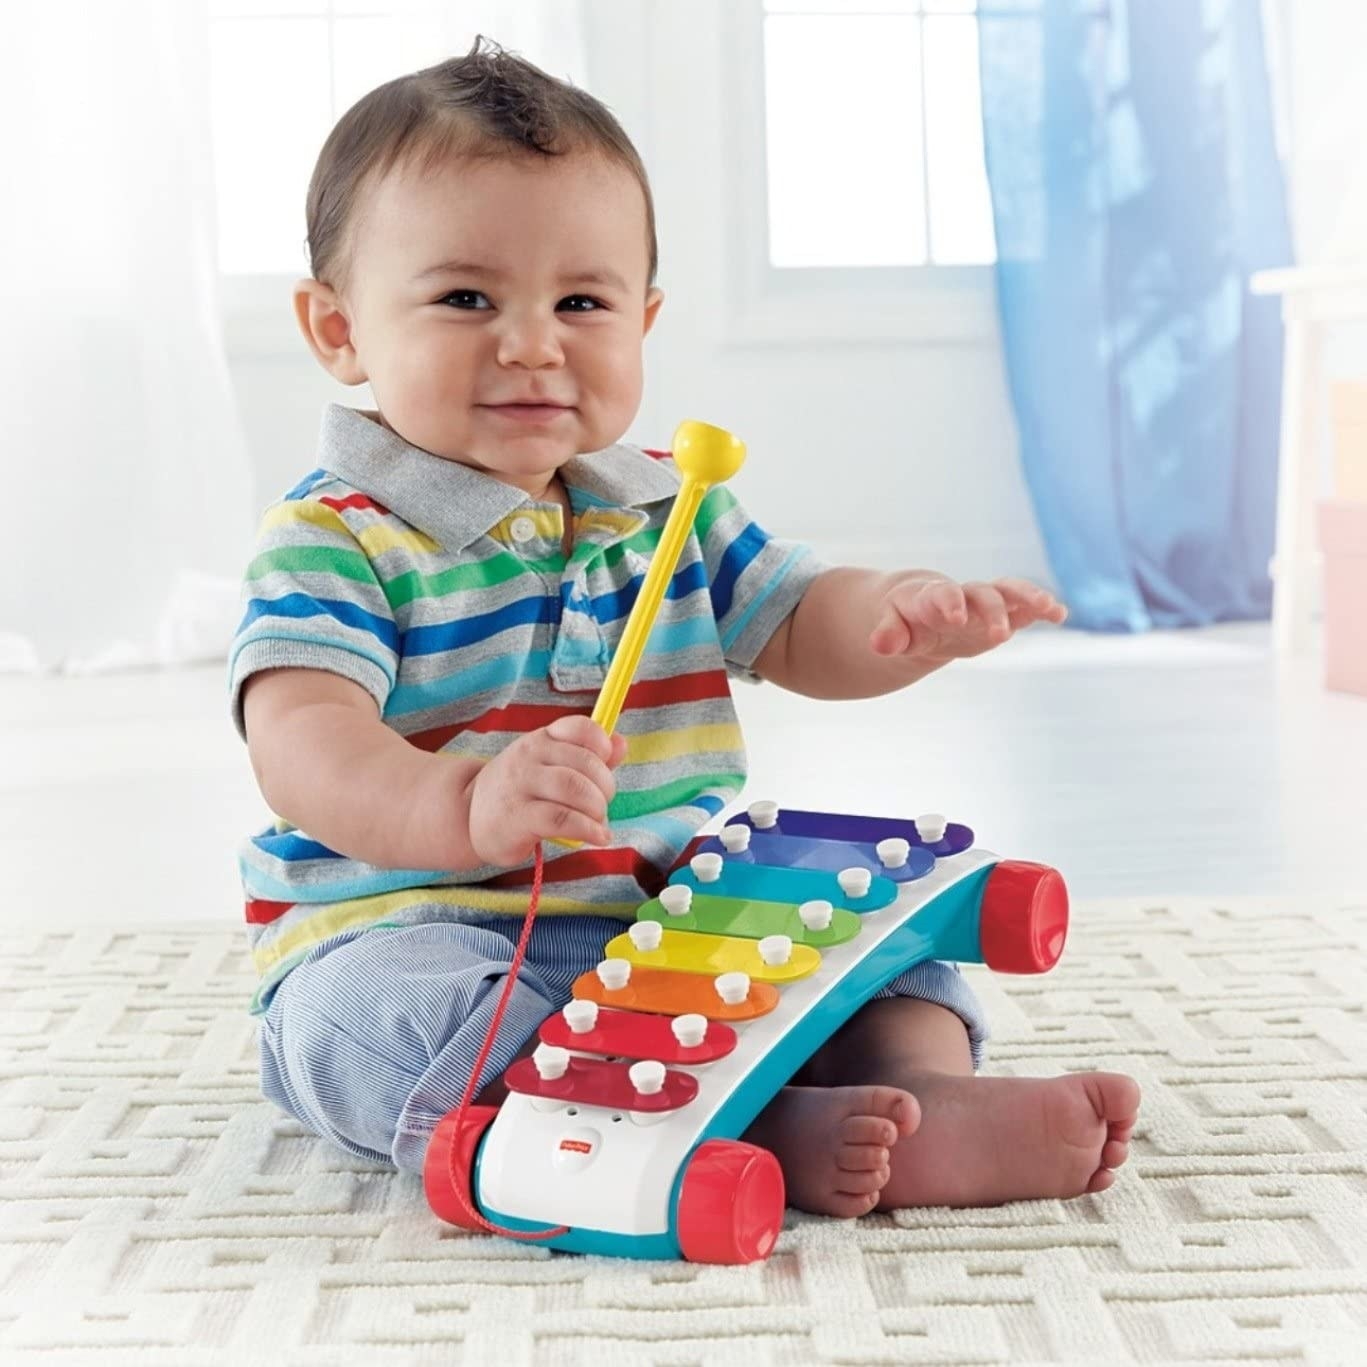 a child playing with a rainbow colored xylophone